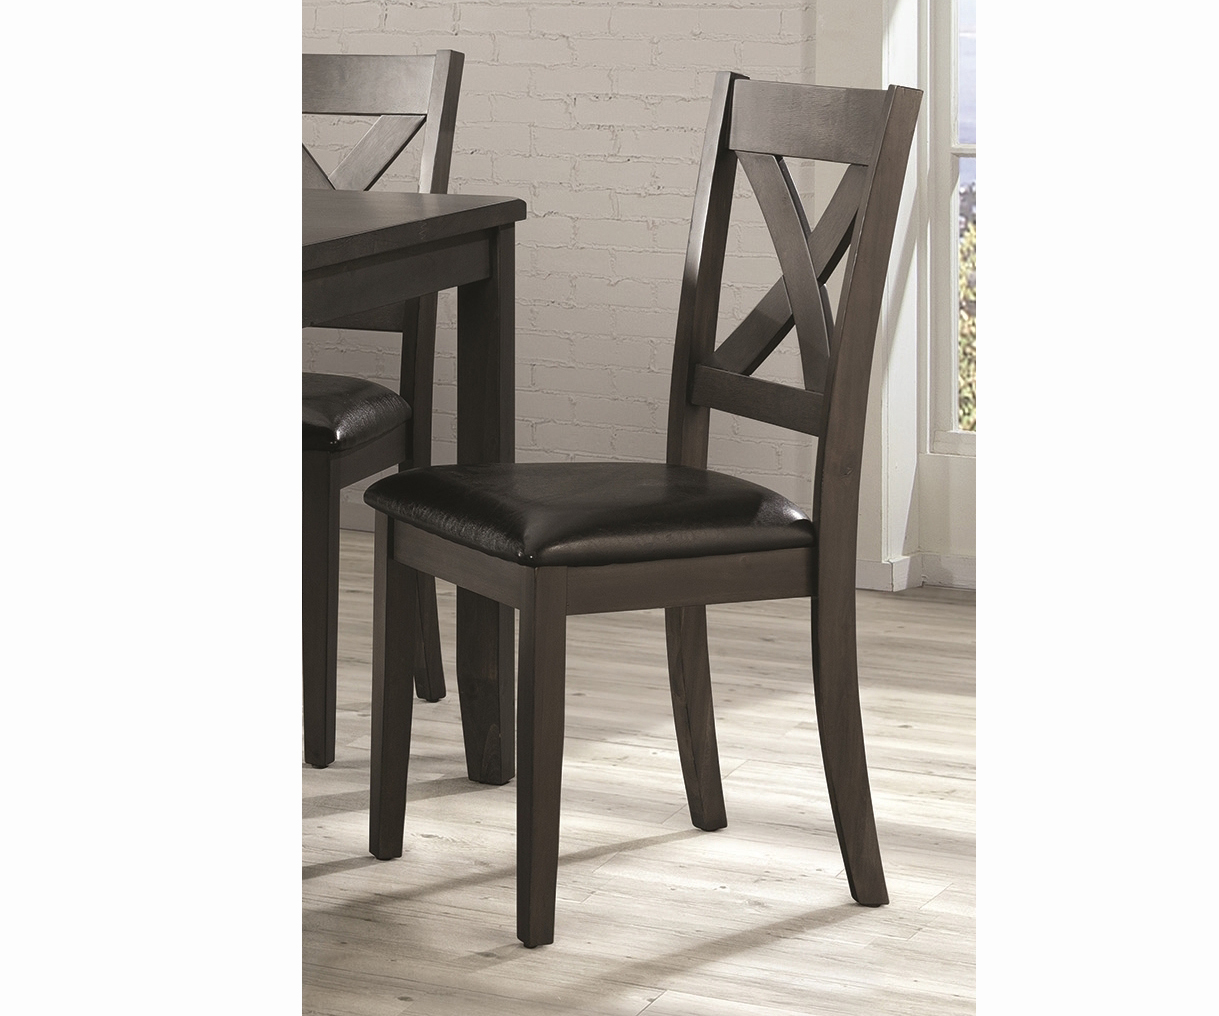 EDAX4007 7pc Alex side chair